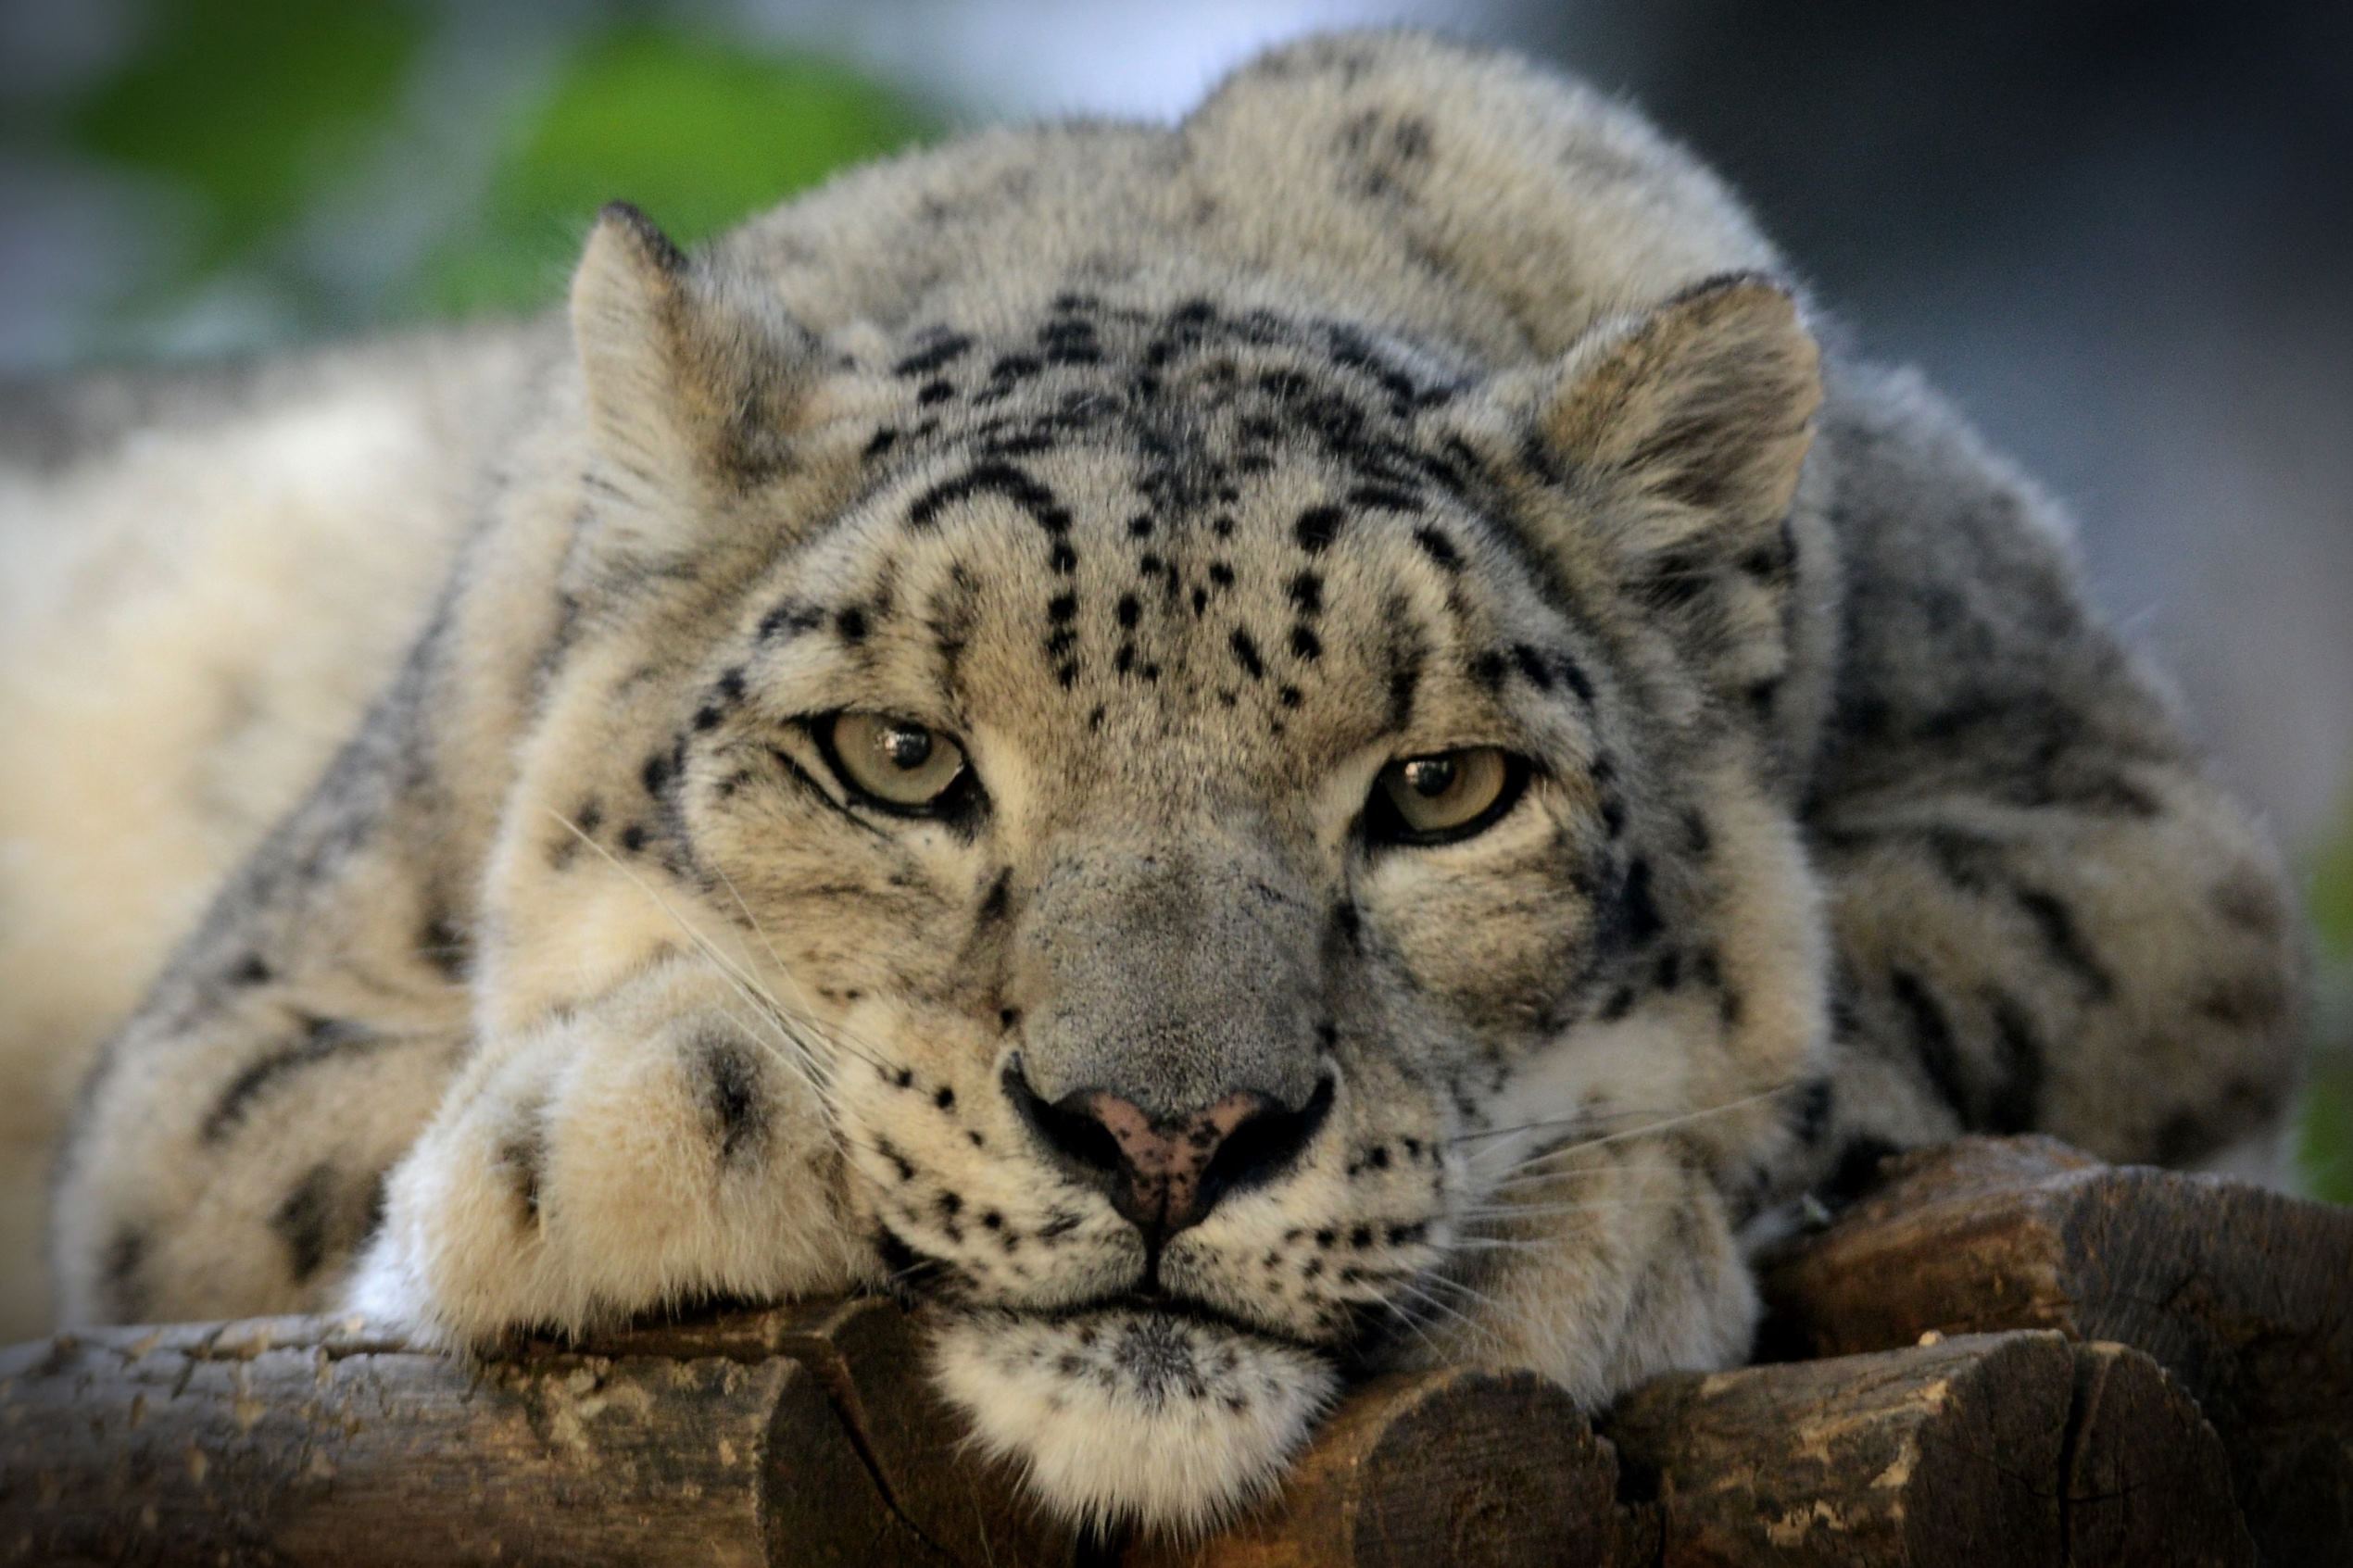 Слайд 1 из 67: Snow leopards at Jihlava Zoo, Czech Republic - 12 Sep 2016 A Snow leopard female called 'Jituse' in her enclosure at the Jihlava Zoo, Czech Republic.